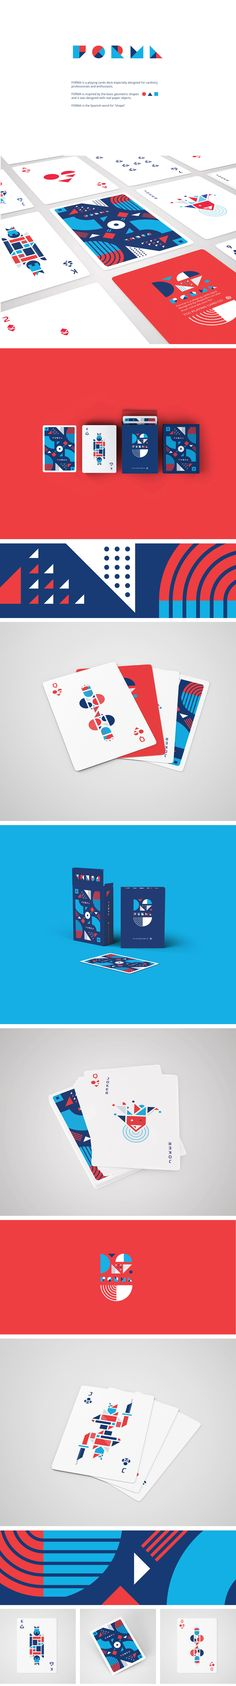 """FORMA card deck"" by Ale Urrutia"